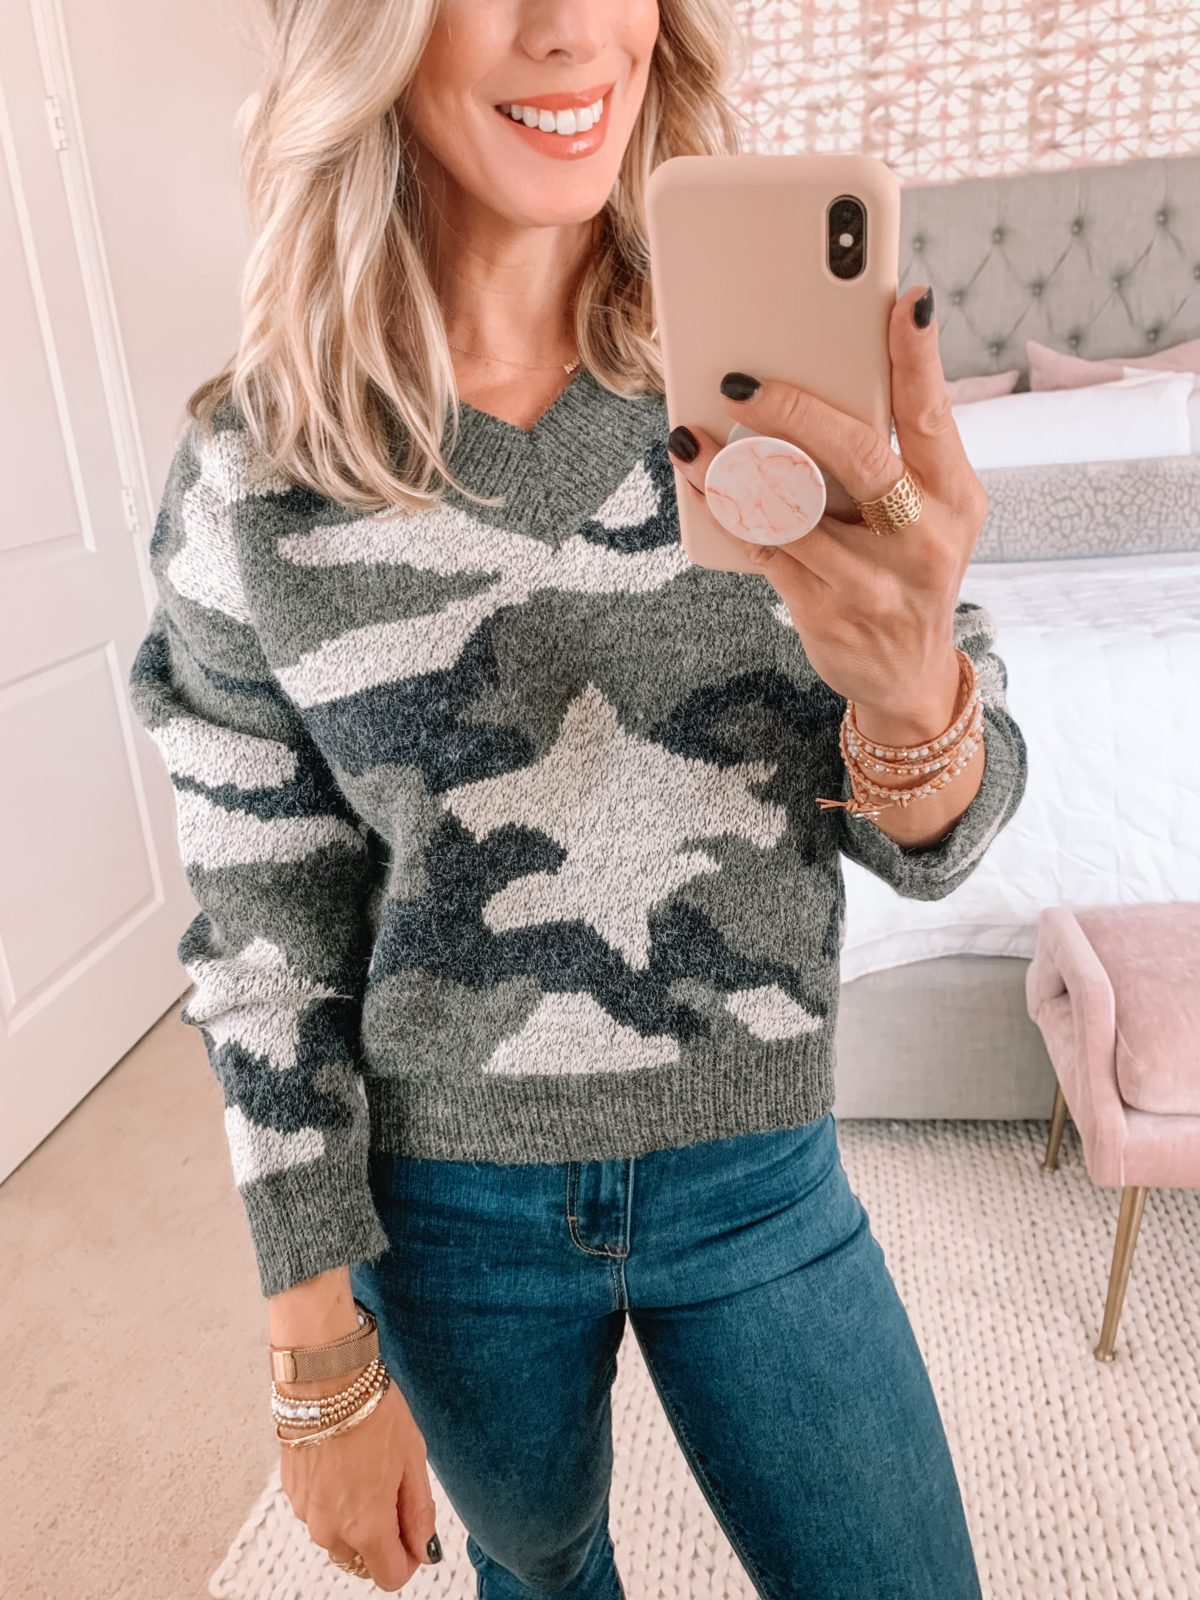 Walmart Fashion Finds, Cropped Camo Sweater, Jeggings, Booties